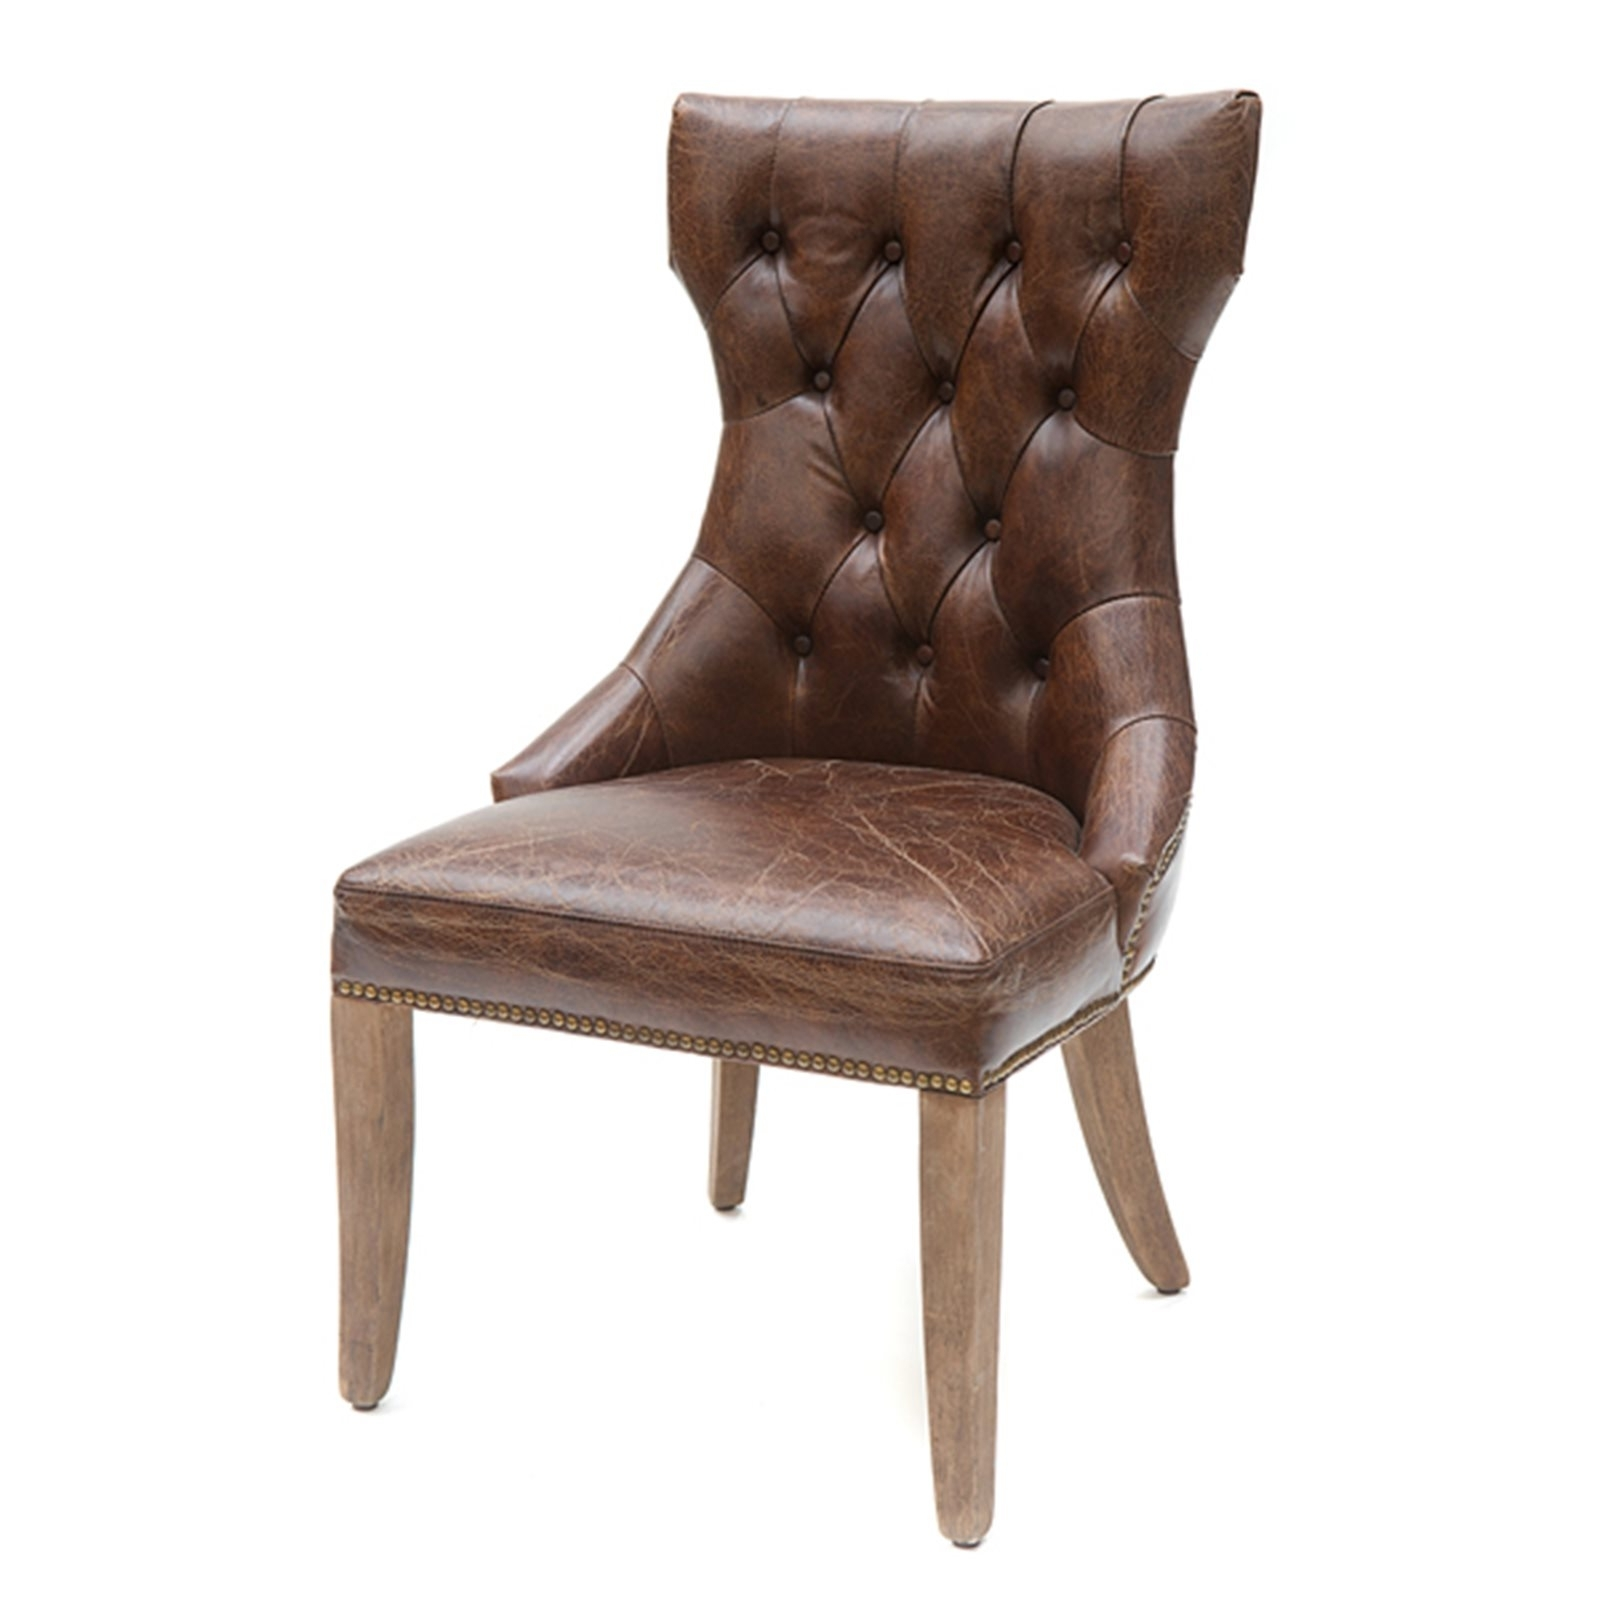 Button Back Dining Chairs Inside Well Known Loughton Button Back Leather Dining Chair (View 3 of 25)